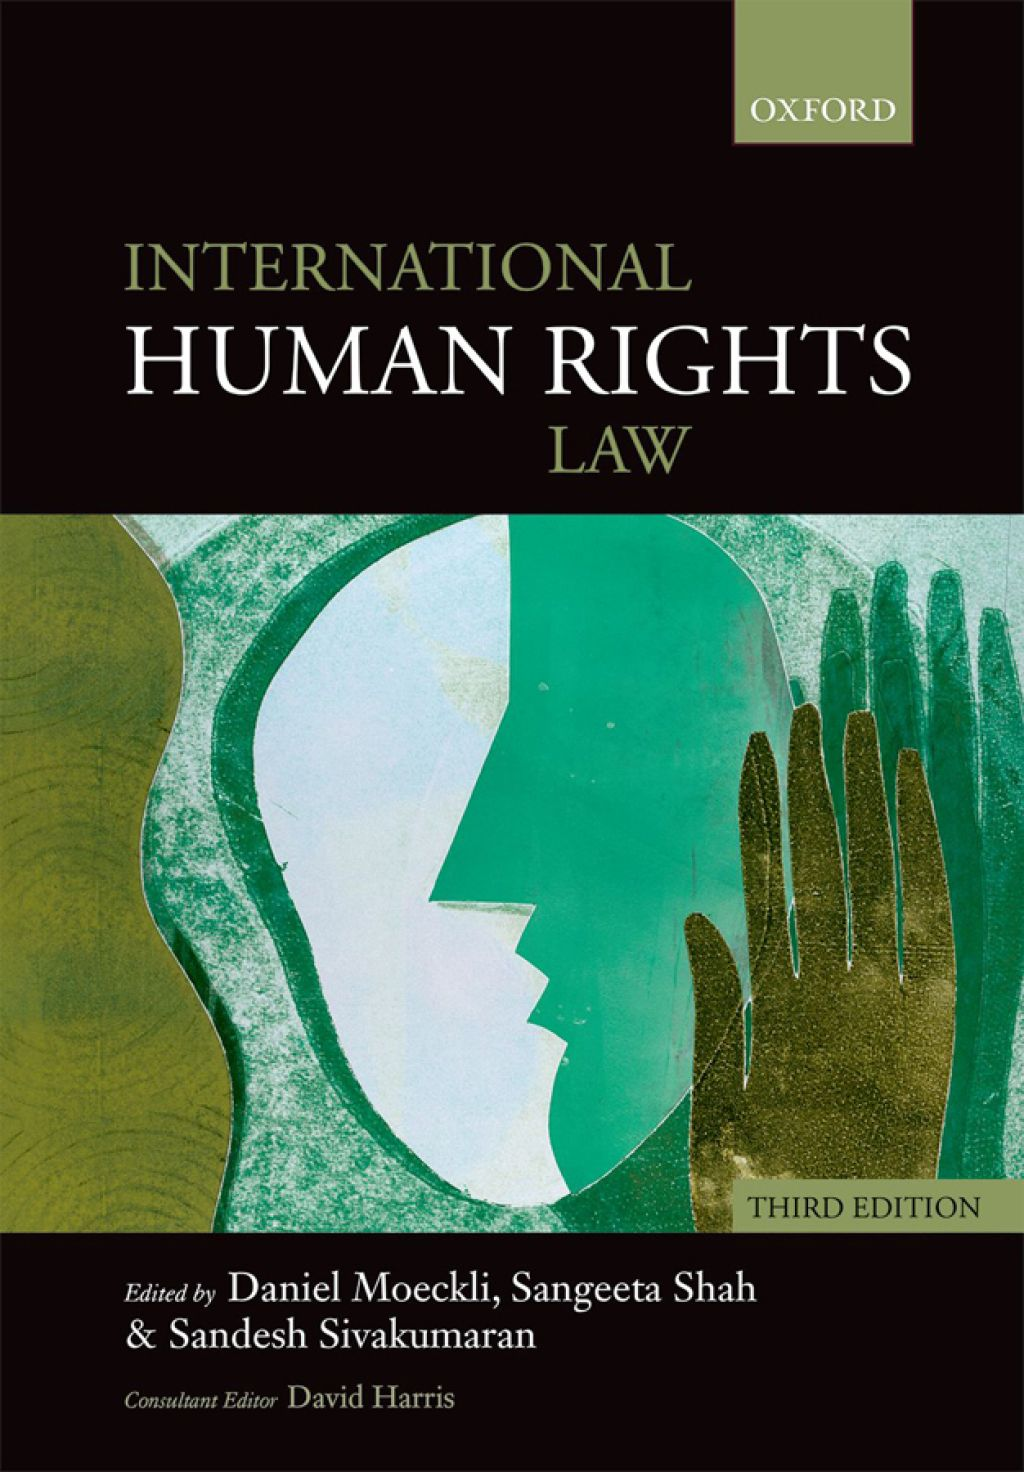 International Human Rights Law 3rd Edition Ebook Rental In 2021 International Human Rights Law Human Rights Law Law Books